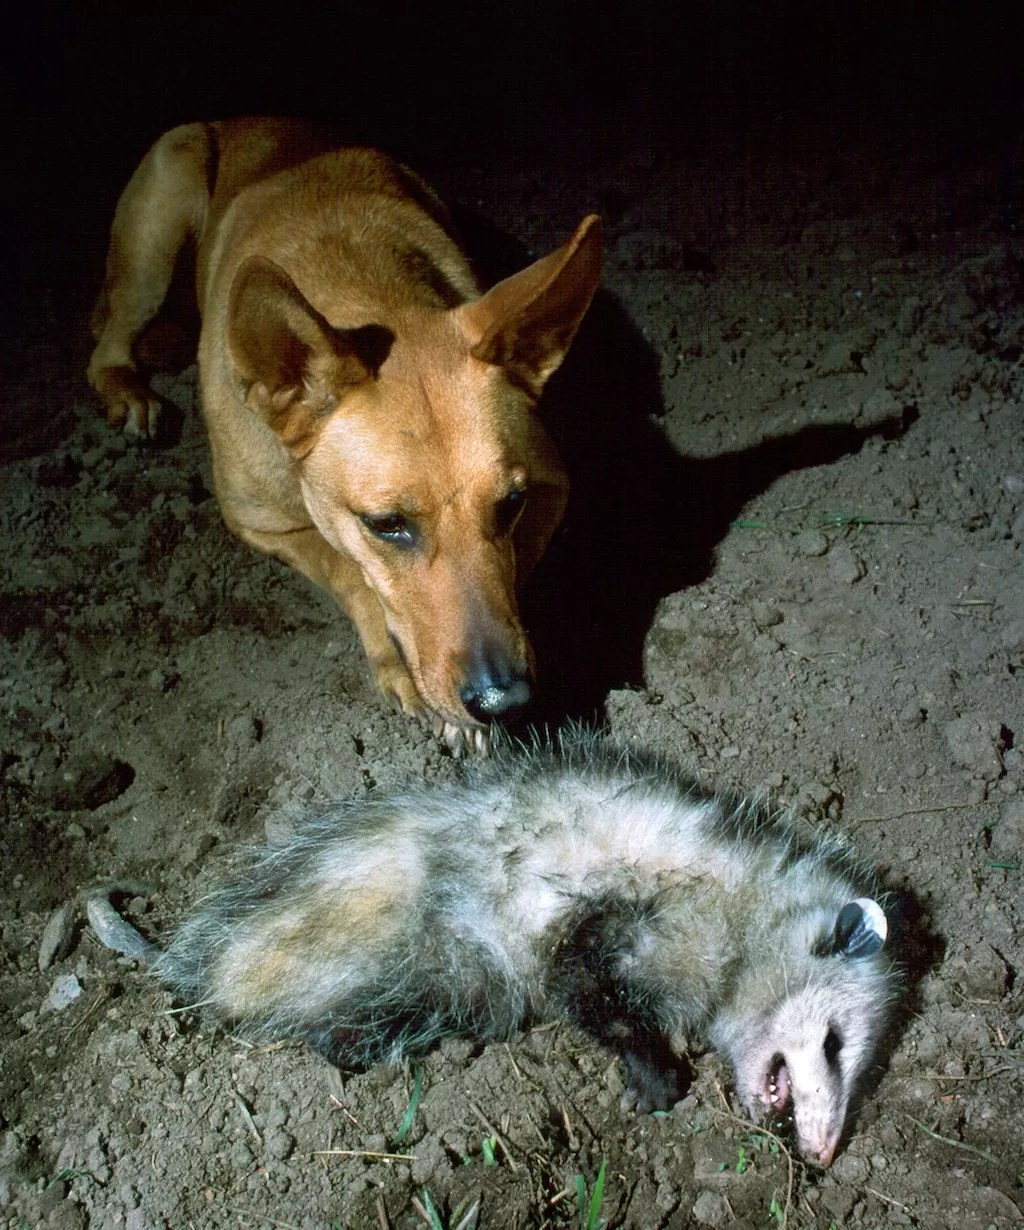 Unique Possum Playing Dead Are Possums A Closer Look At This Do Possums Bite Cats Do Australian Possums Bite houzz-03 Do Possums Bite